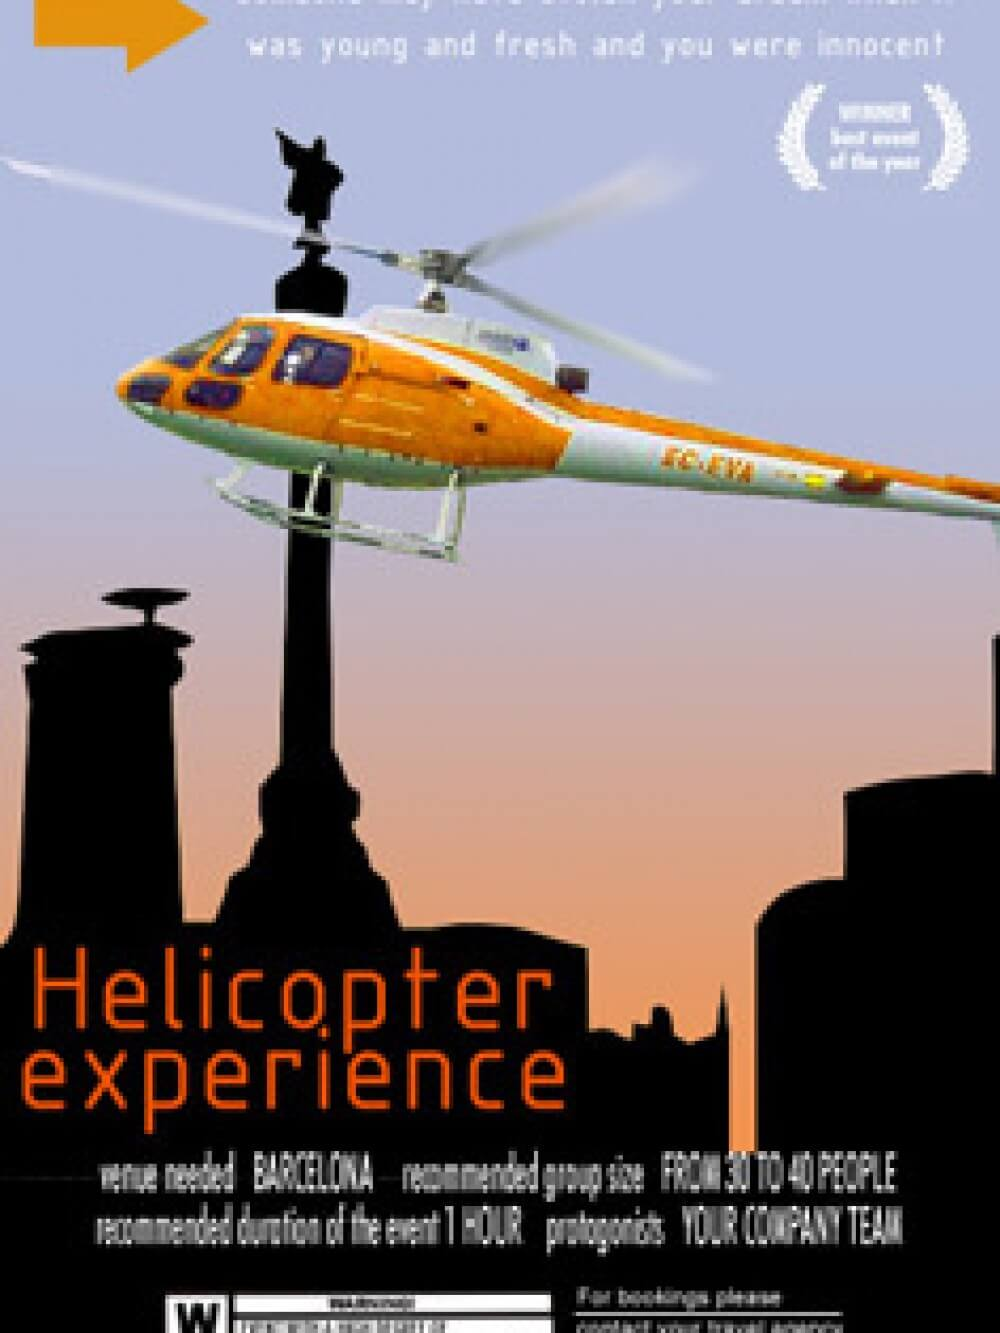 helicopter_experience_vertical_web